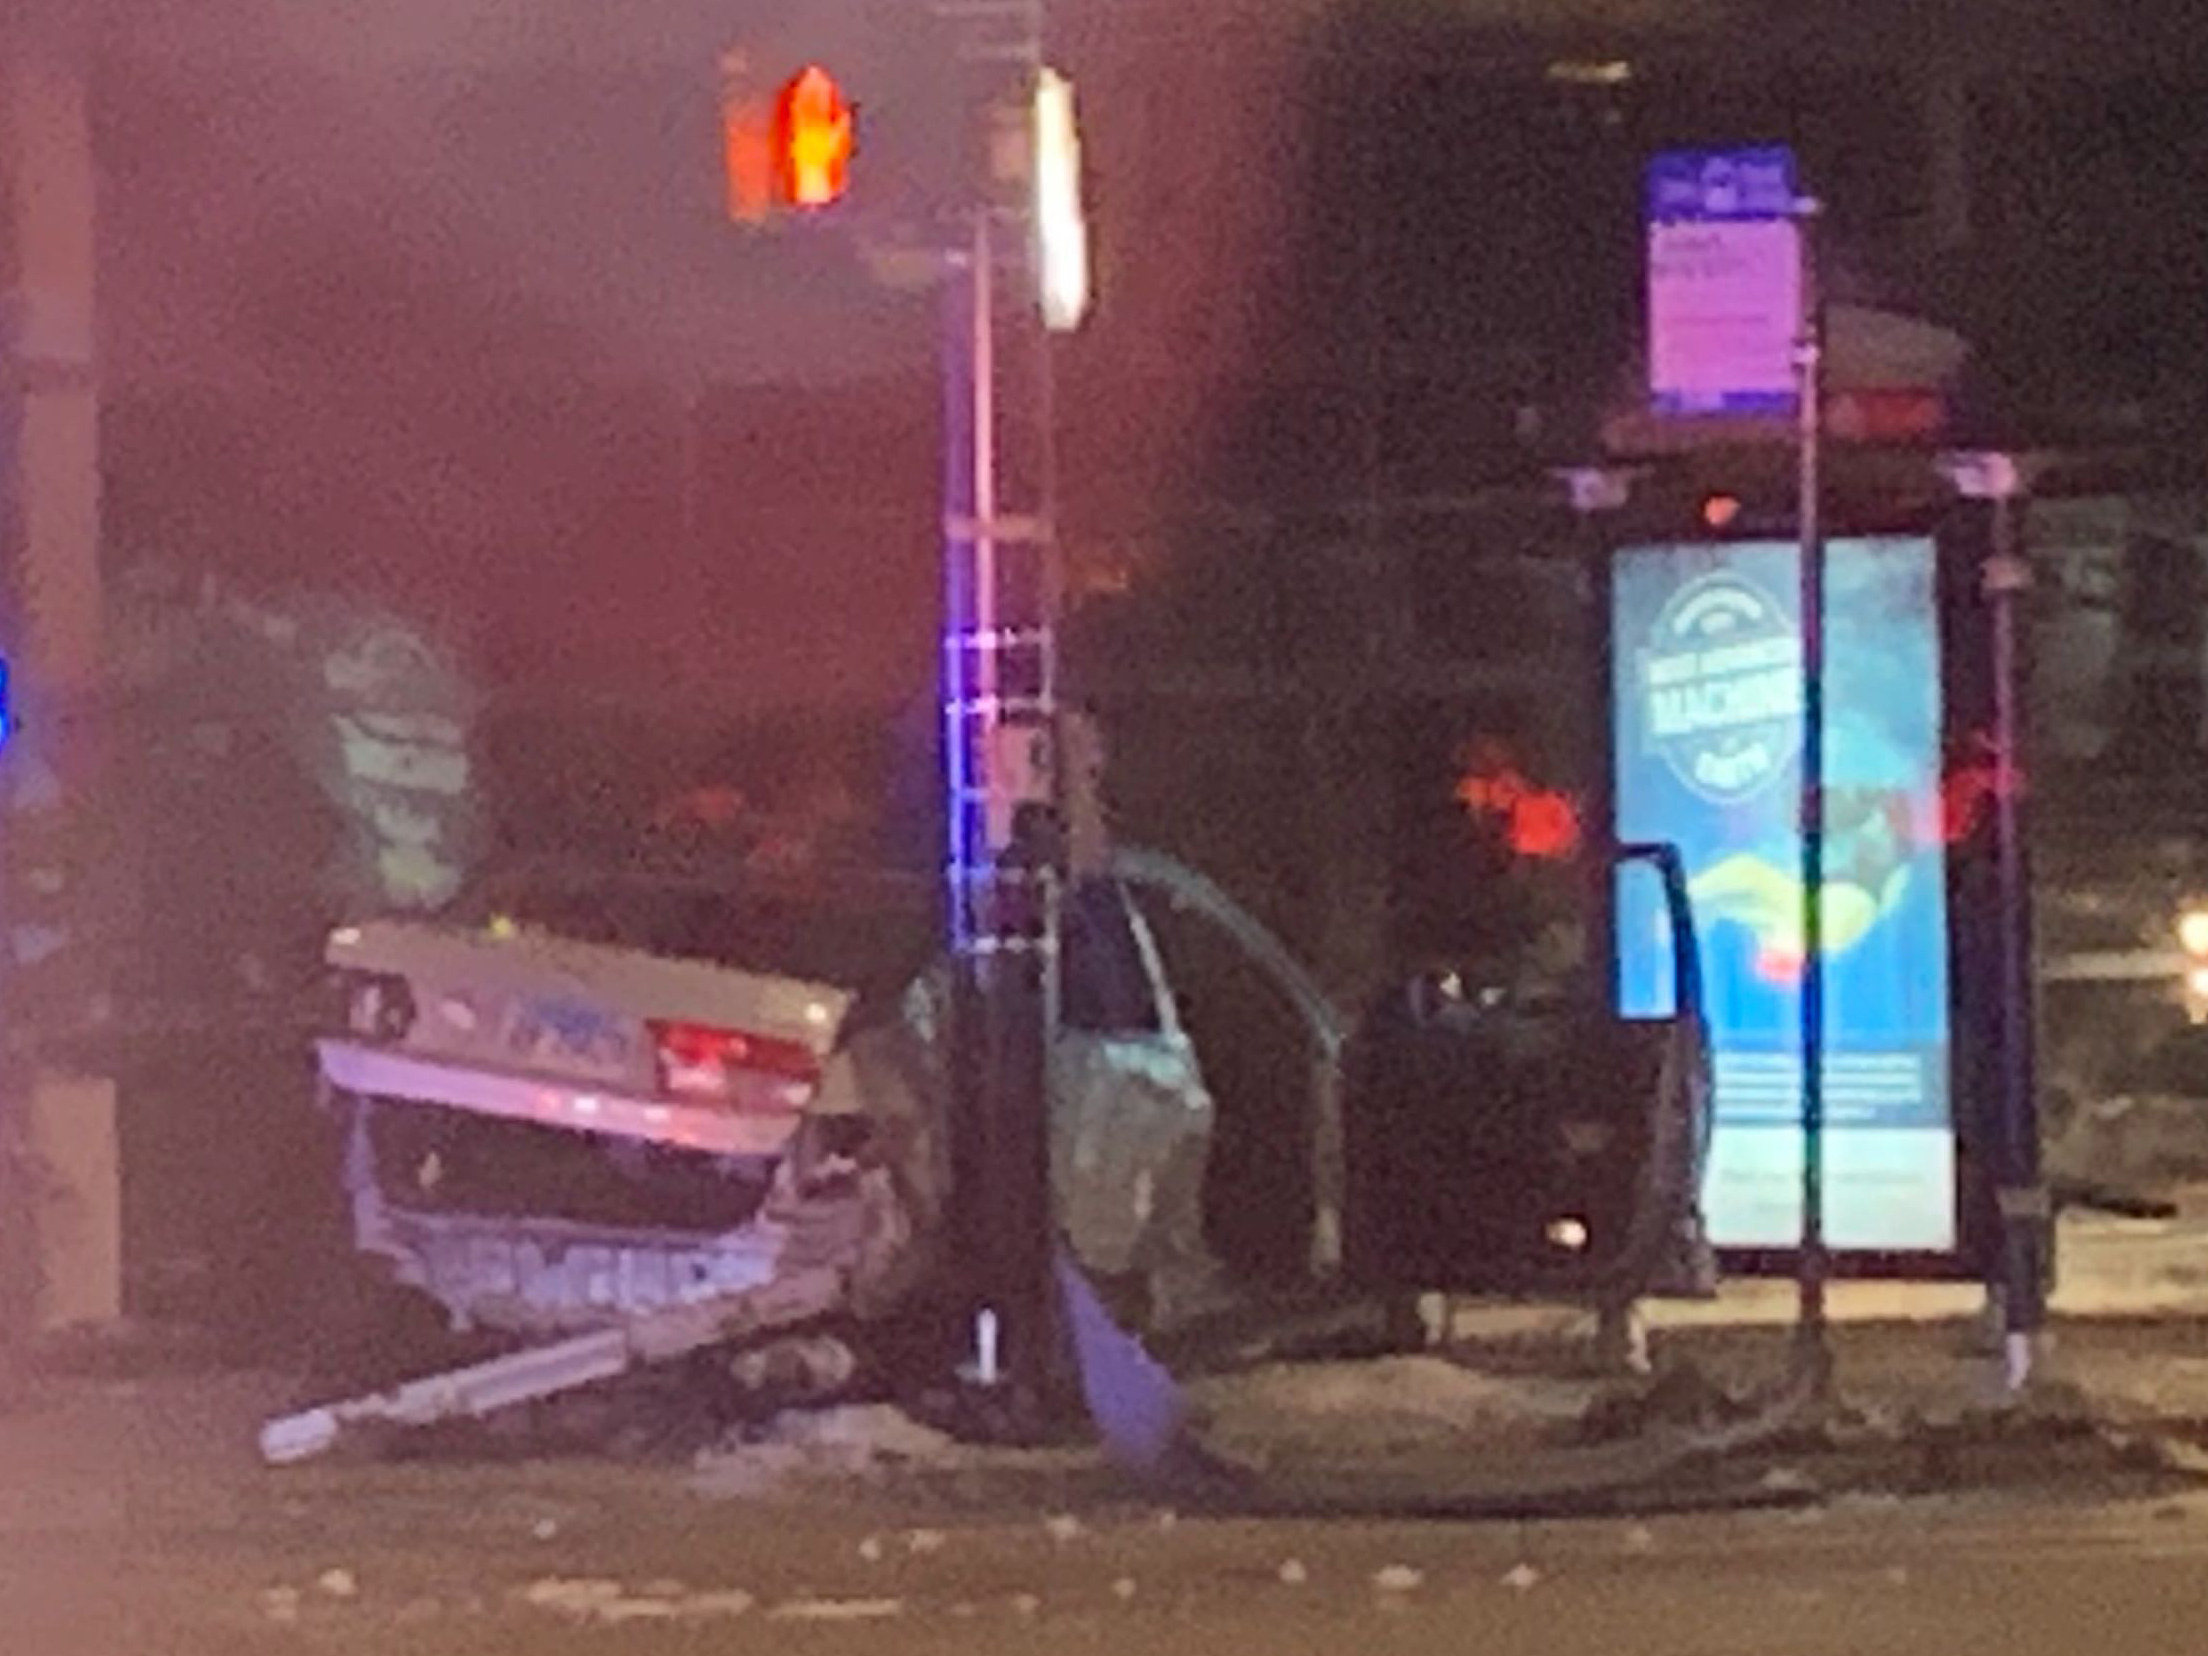 A vehicle crashed in Ravenswood after a police chase stemming from a shooting Jan. 21, 2020.